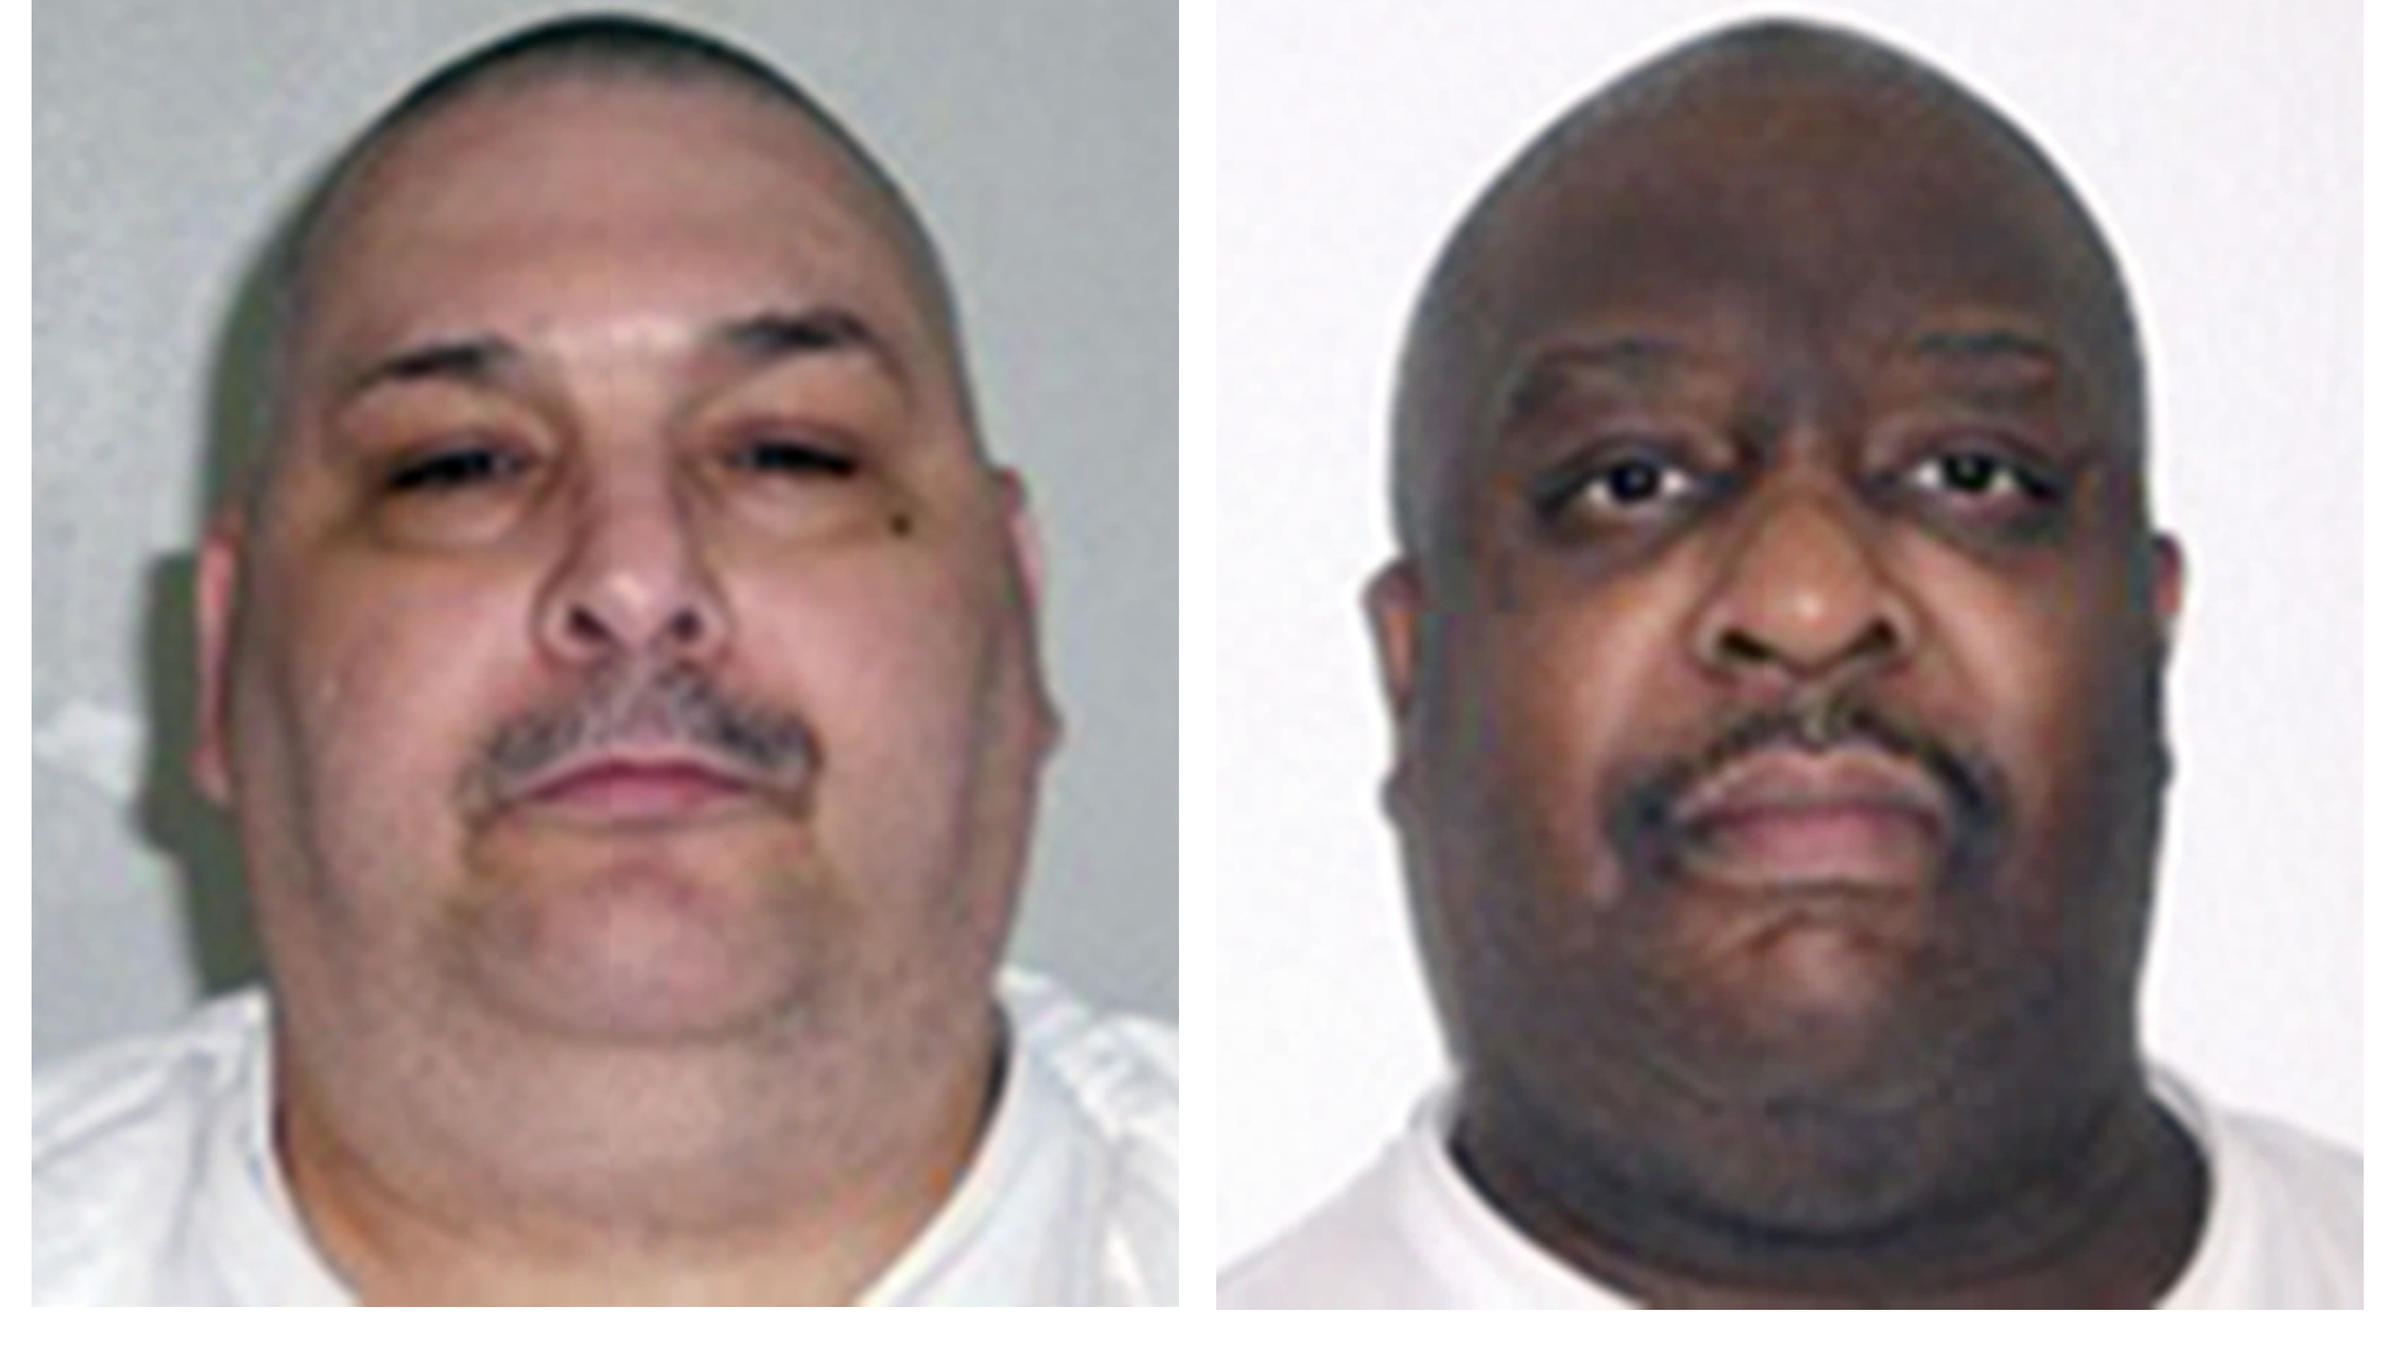 Arkansas executed two men on the same gurney last night